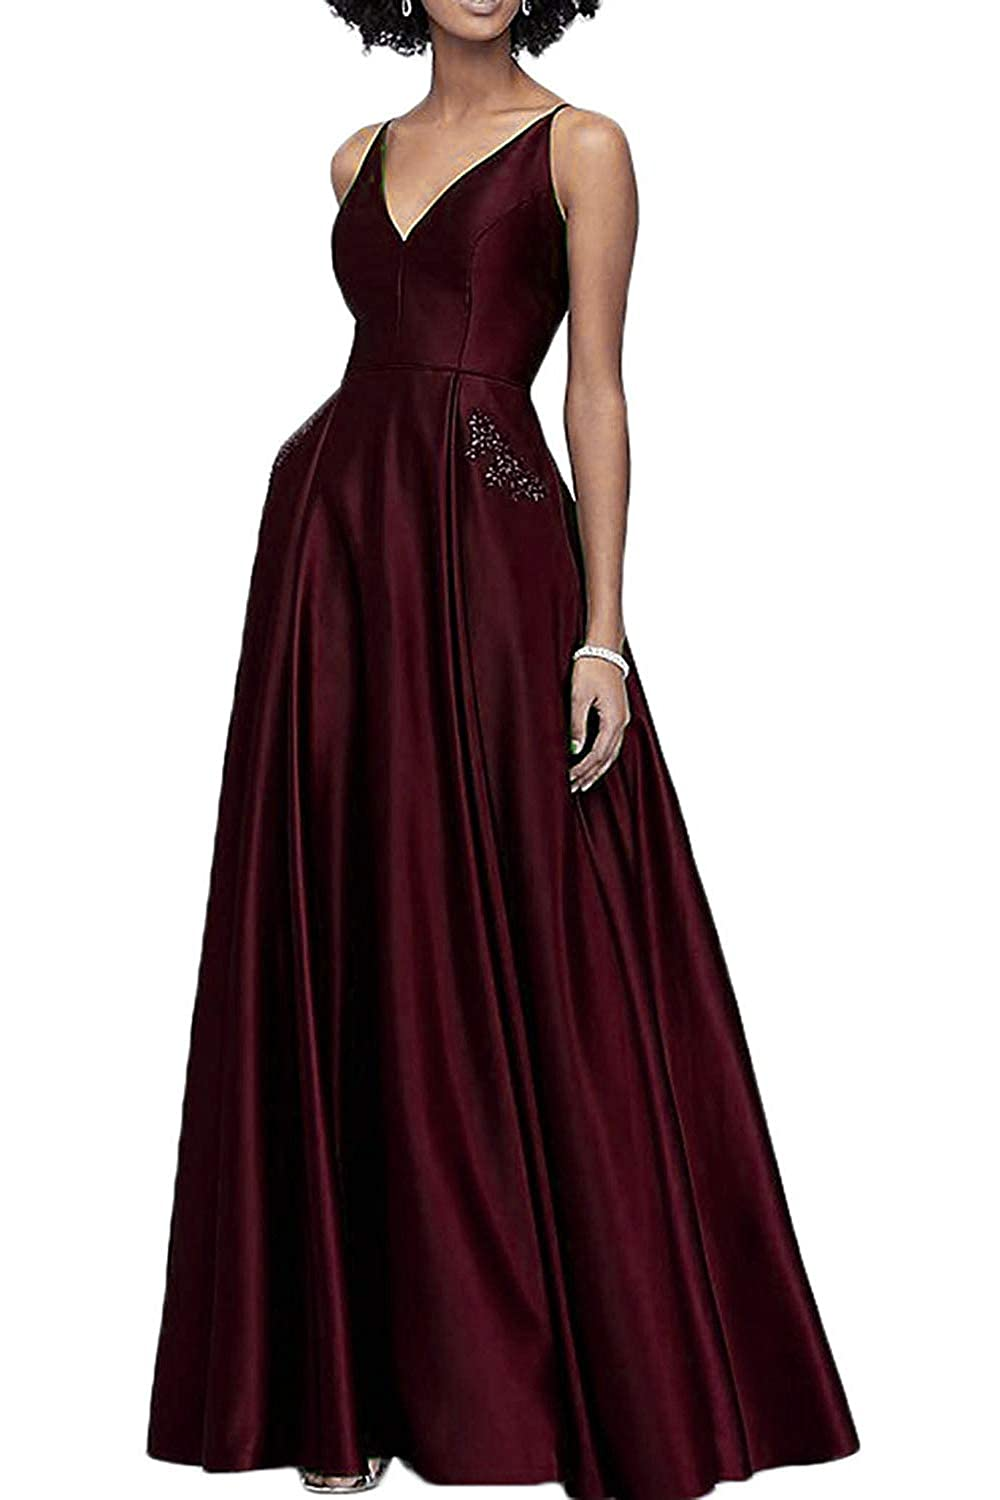 Burgundy WHLWHL Beaded Long Ball Gown Prom Dresses for Women 2019 Satin V Neckline with Pockets